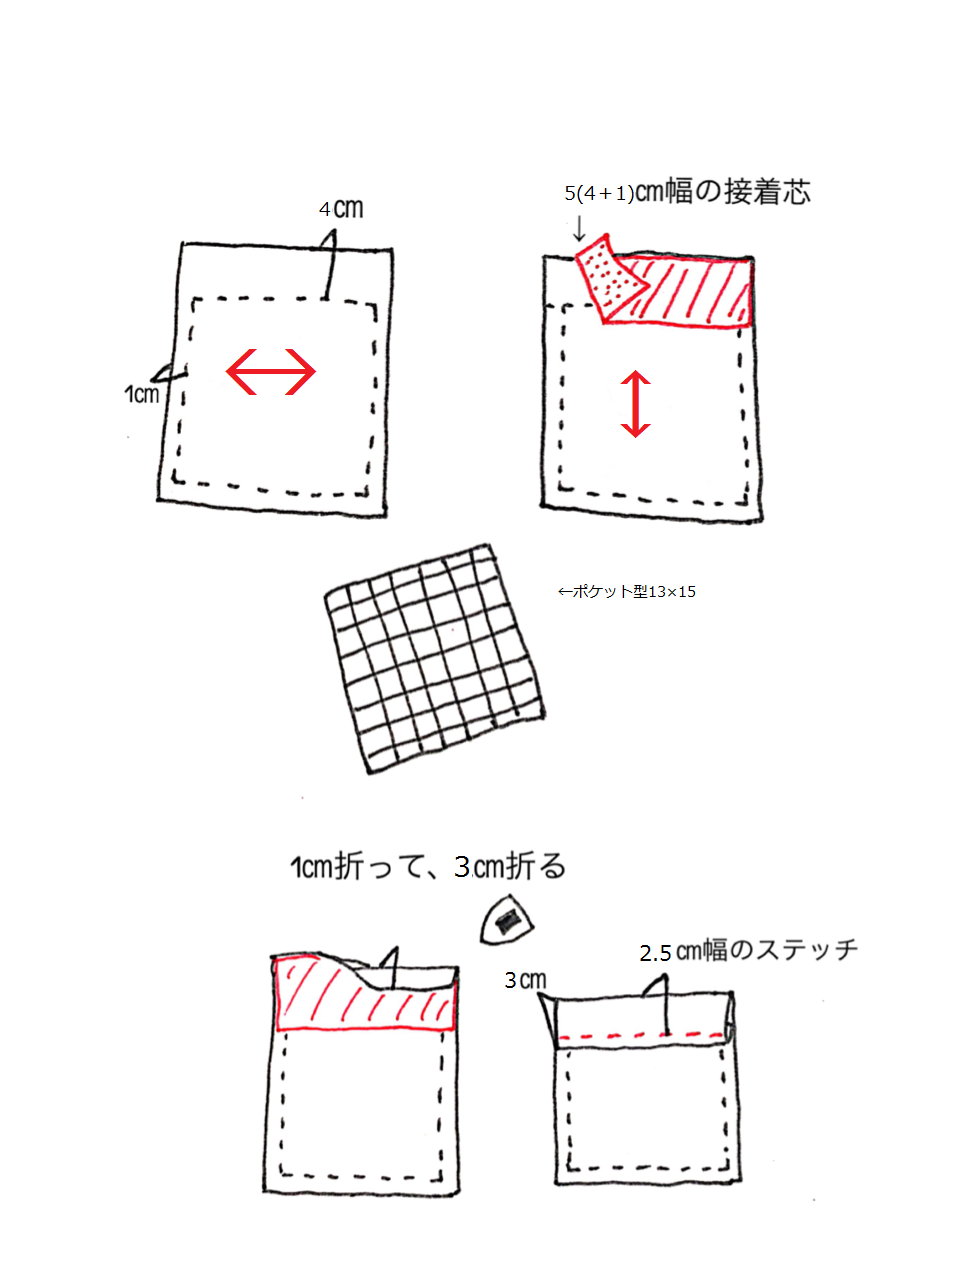 20150902101230554.png